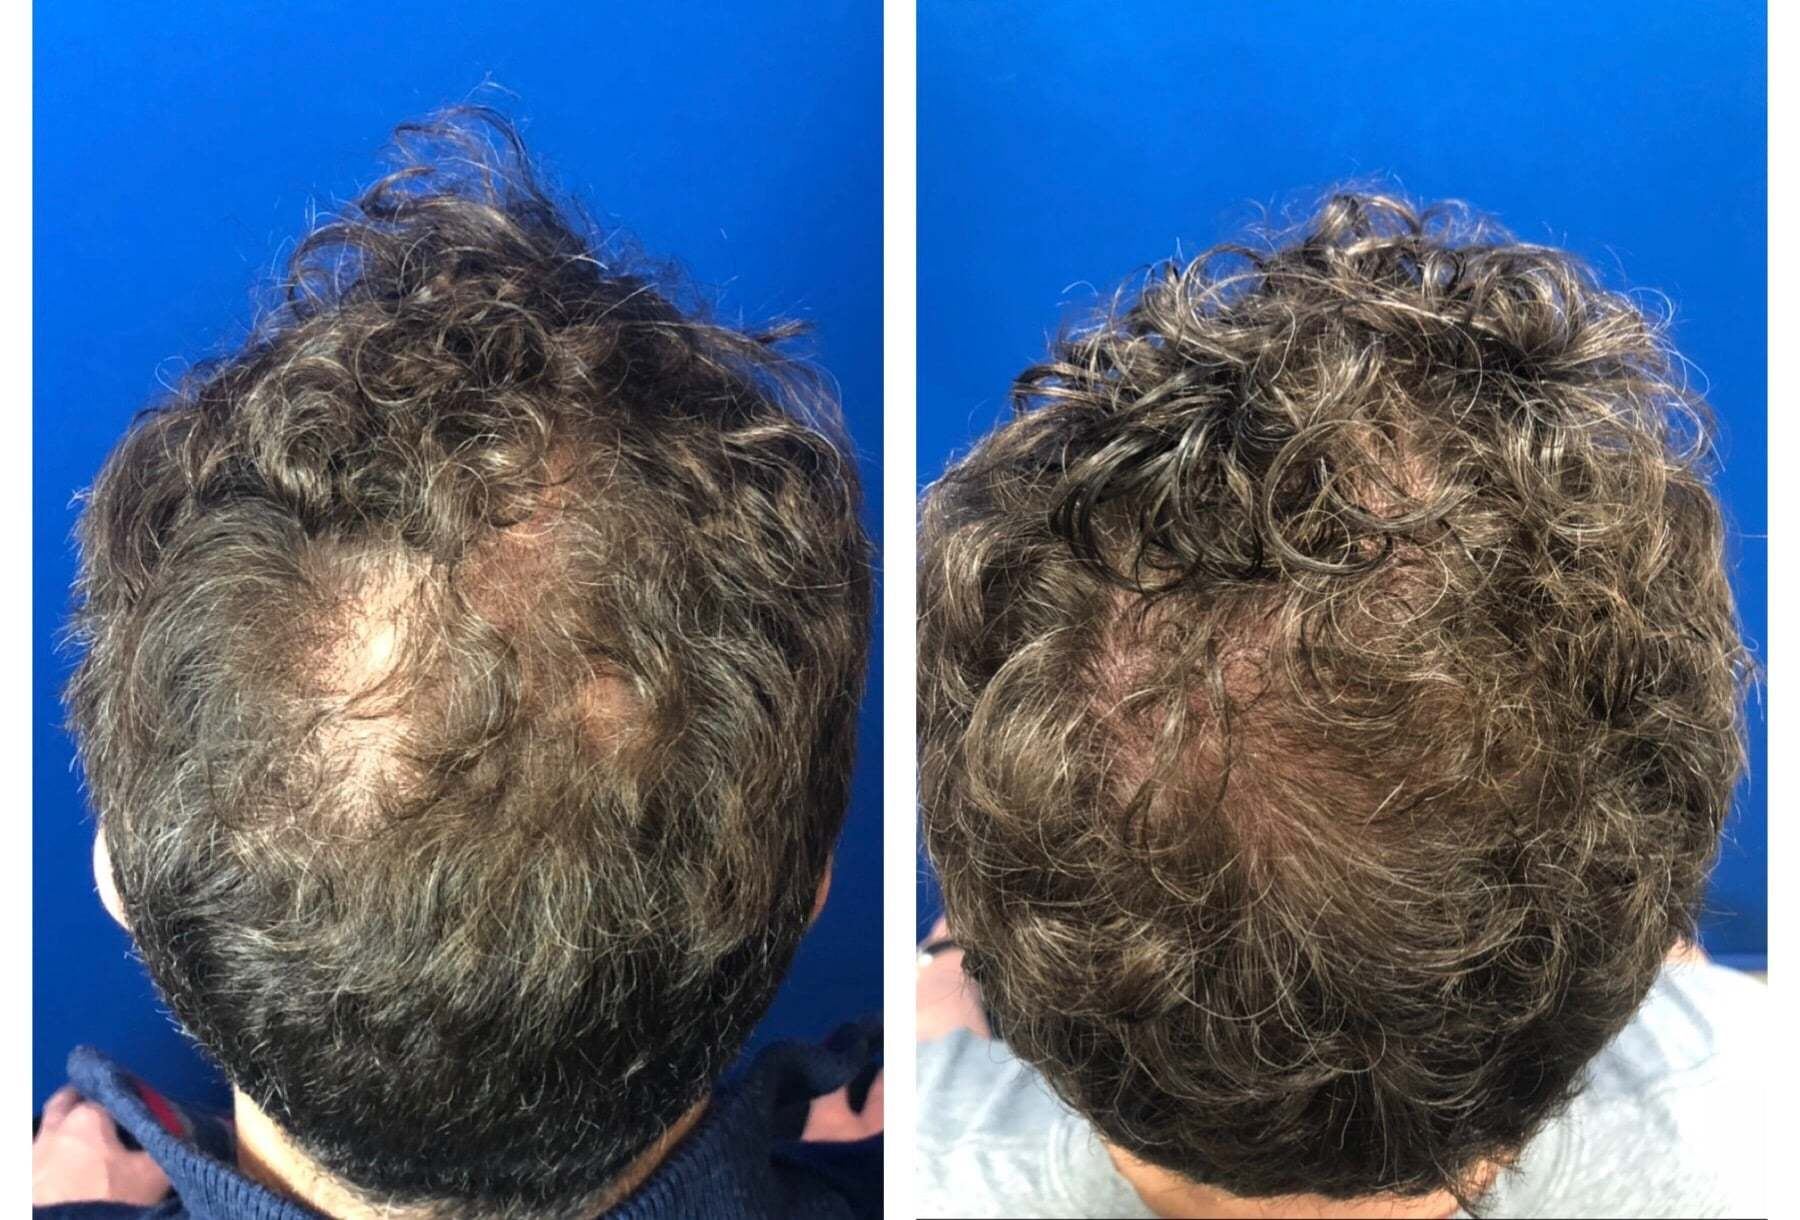 before and after platelet rich plasma for hair loss treatment